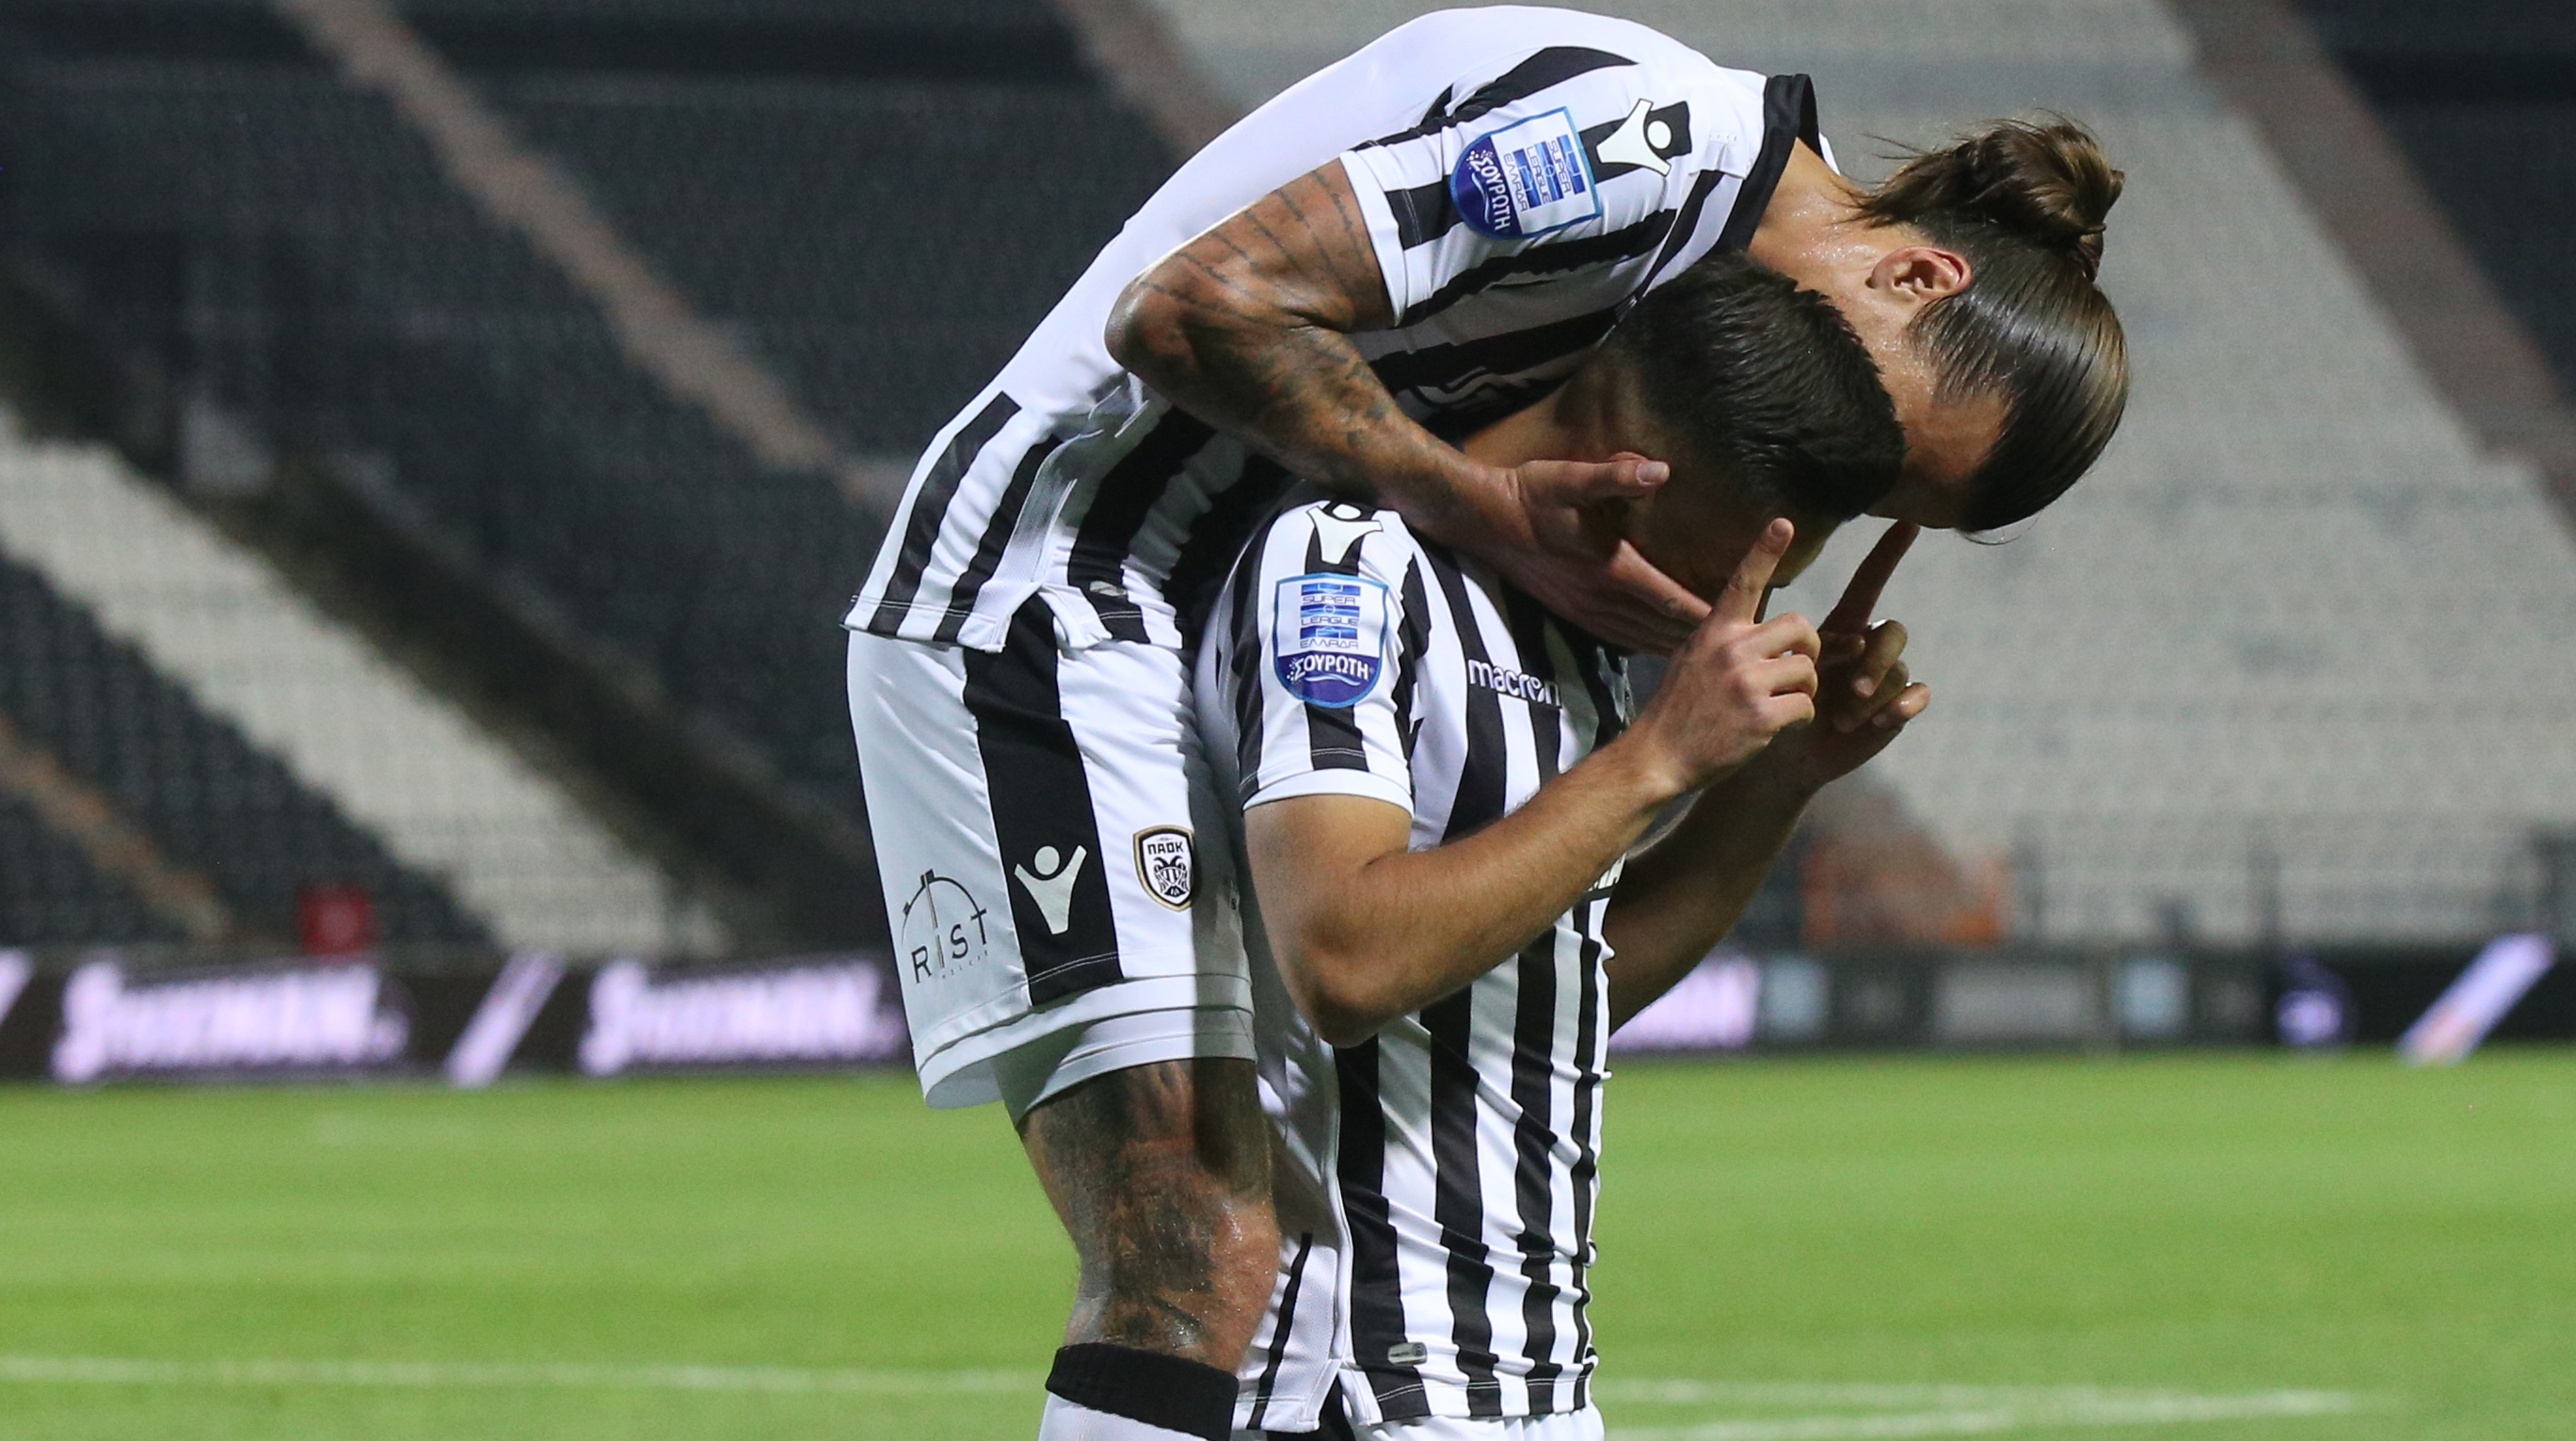 PAOK – Xanthi: Highlights